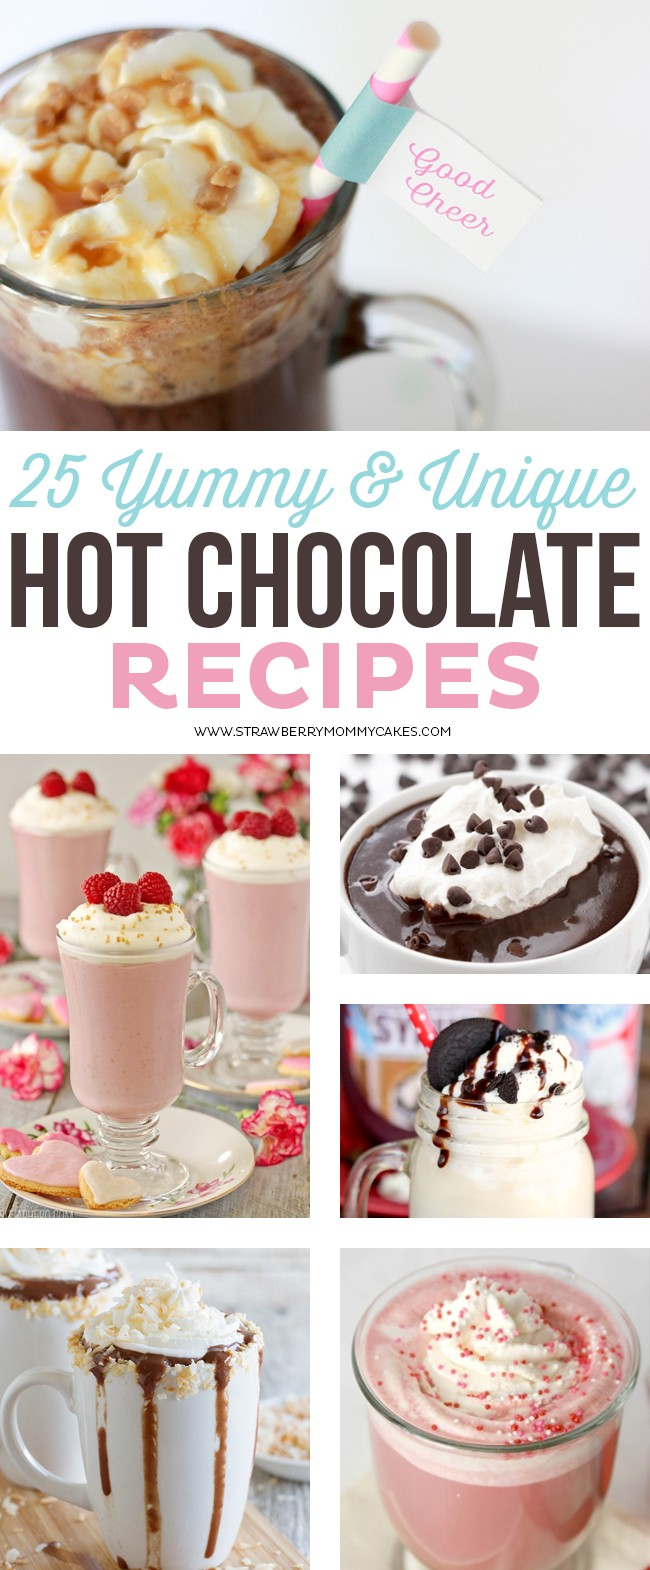 25 Unique French Nail Art Ideas On Pinterest: 25 Yummy And Unique Hot Chocolate Recipes